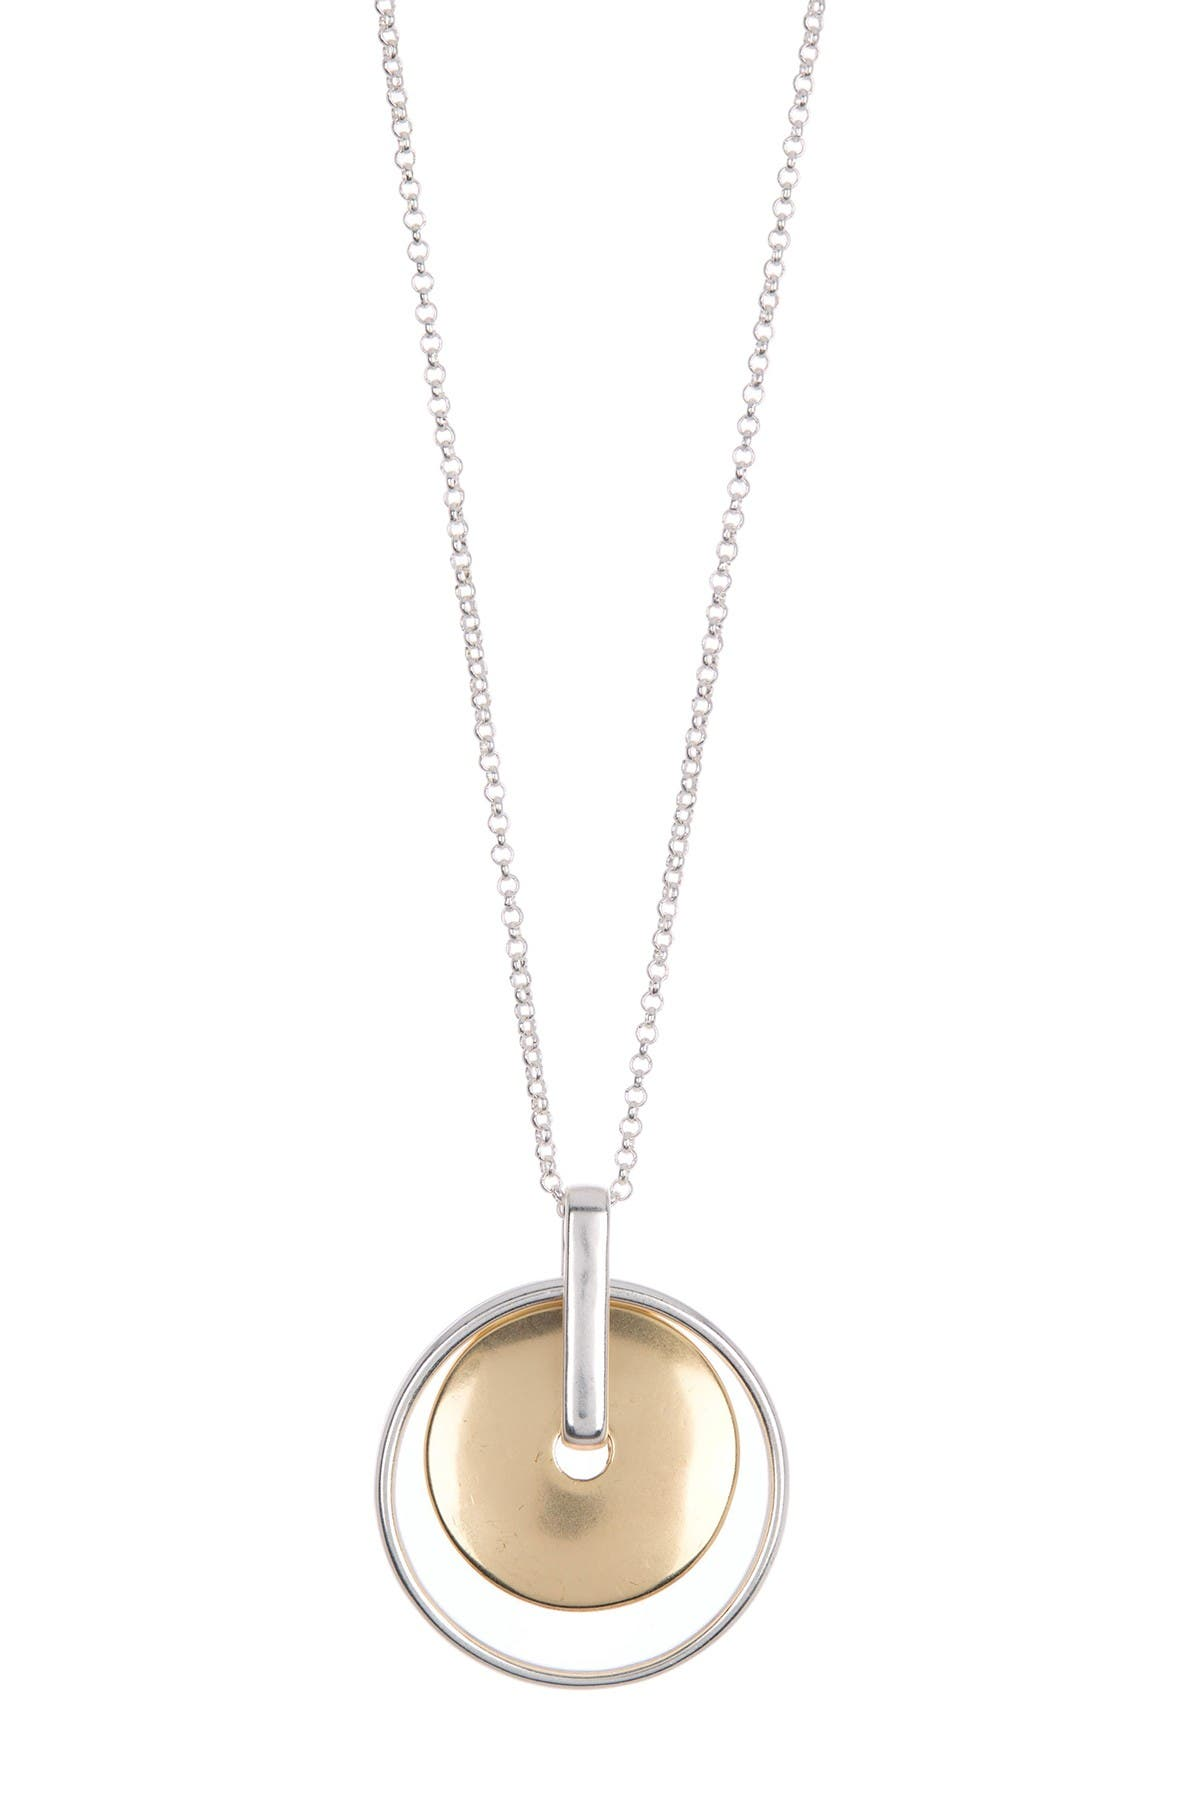 Image of Lucky Brand Two-Tone Orbital Pendant Necklace